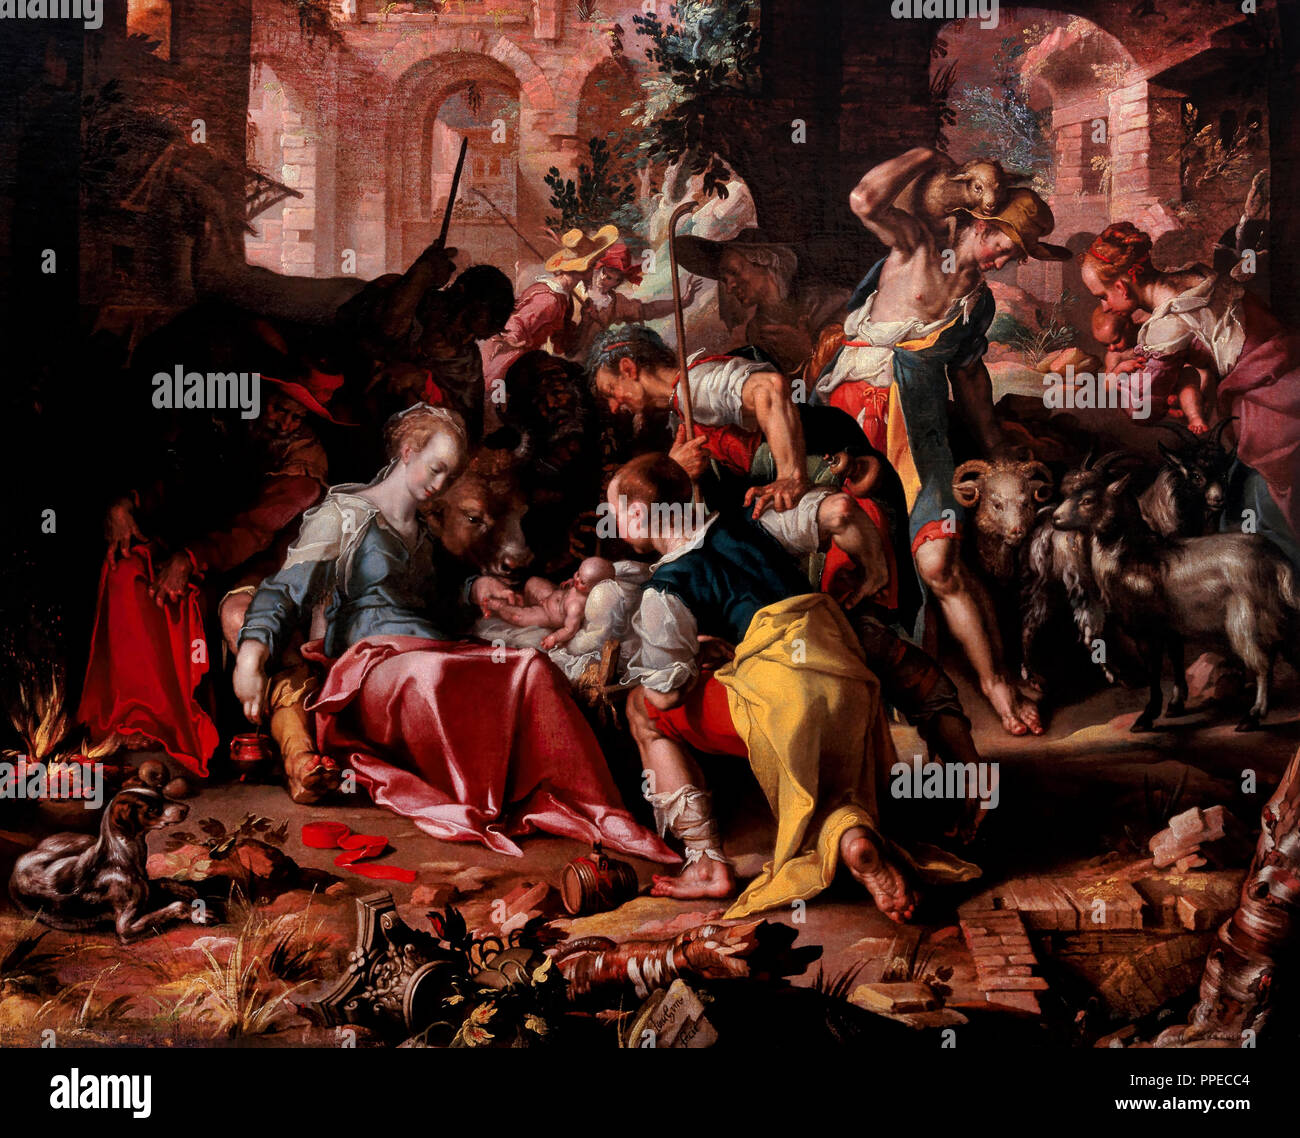 Joachim Wtewael, The Adoration of the Shepherds 1598 Oil on canvas. Centraal Museum in Utrecht, Netherlands. - Stock Image